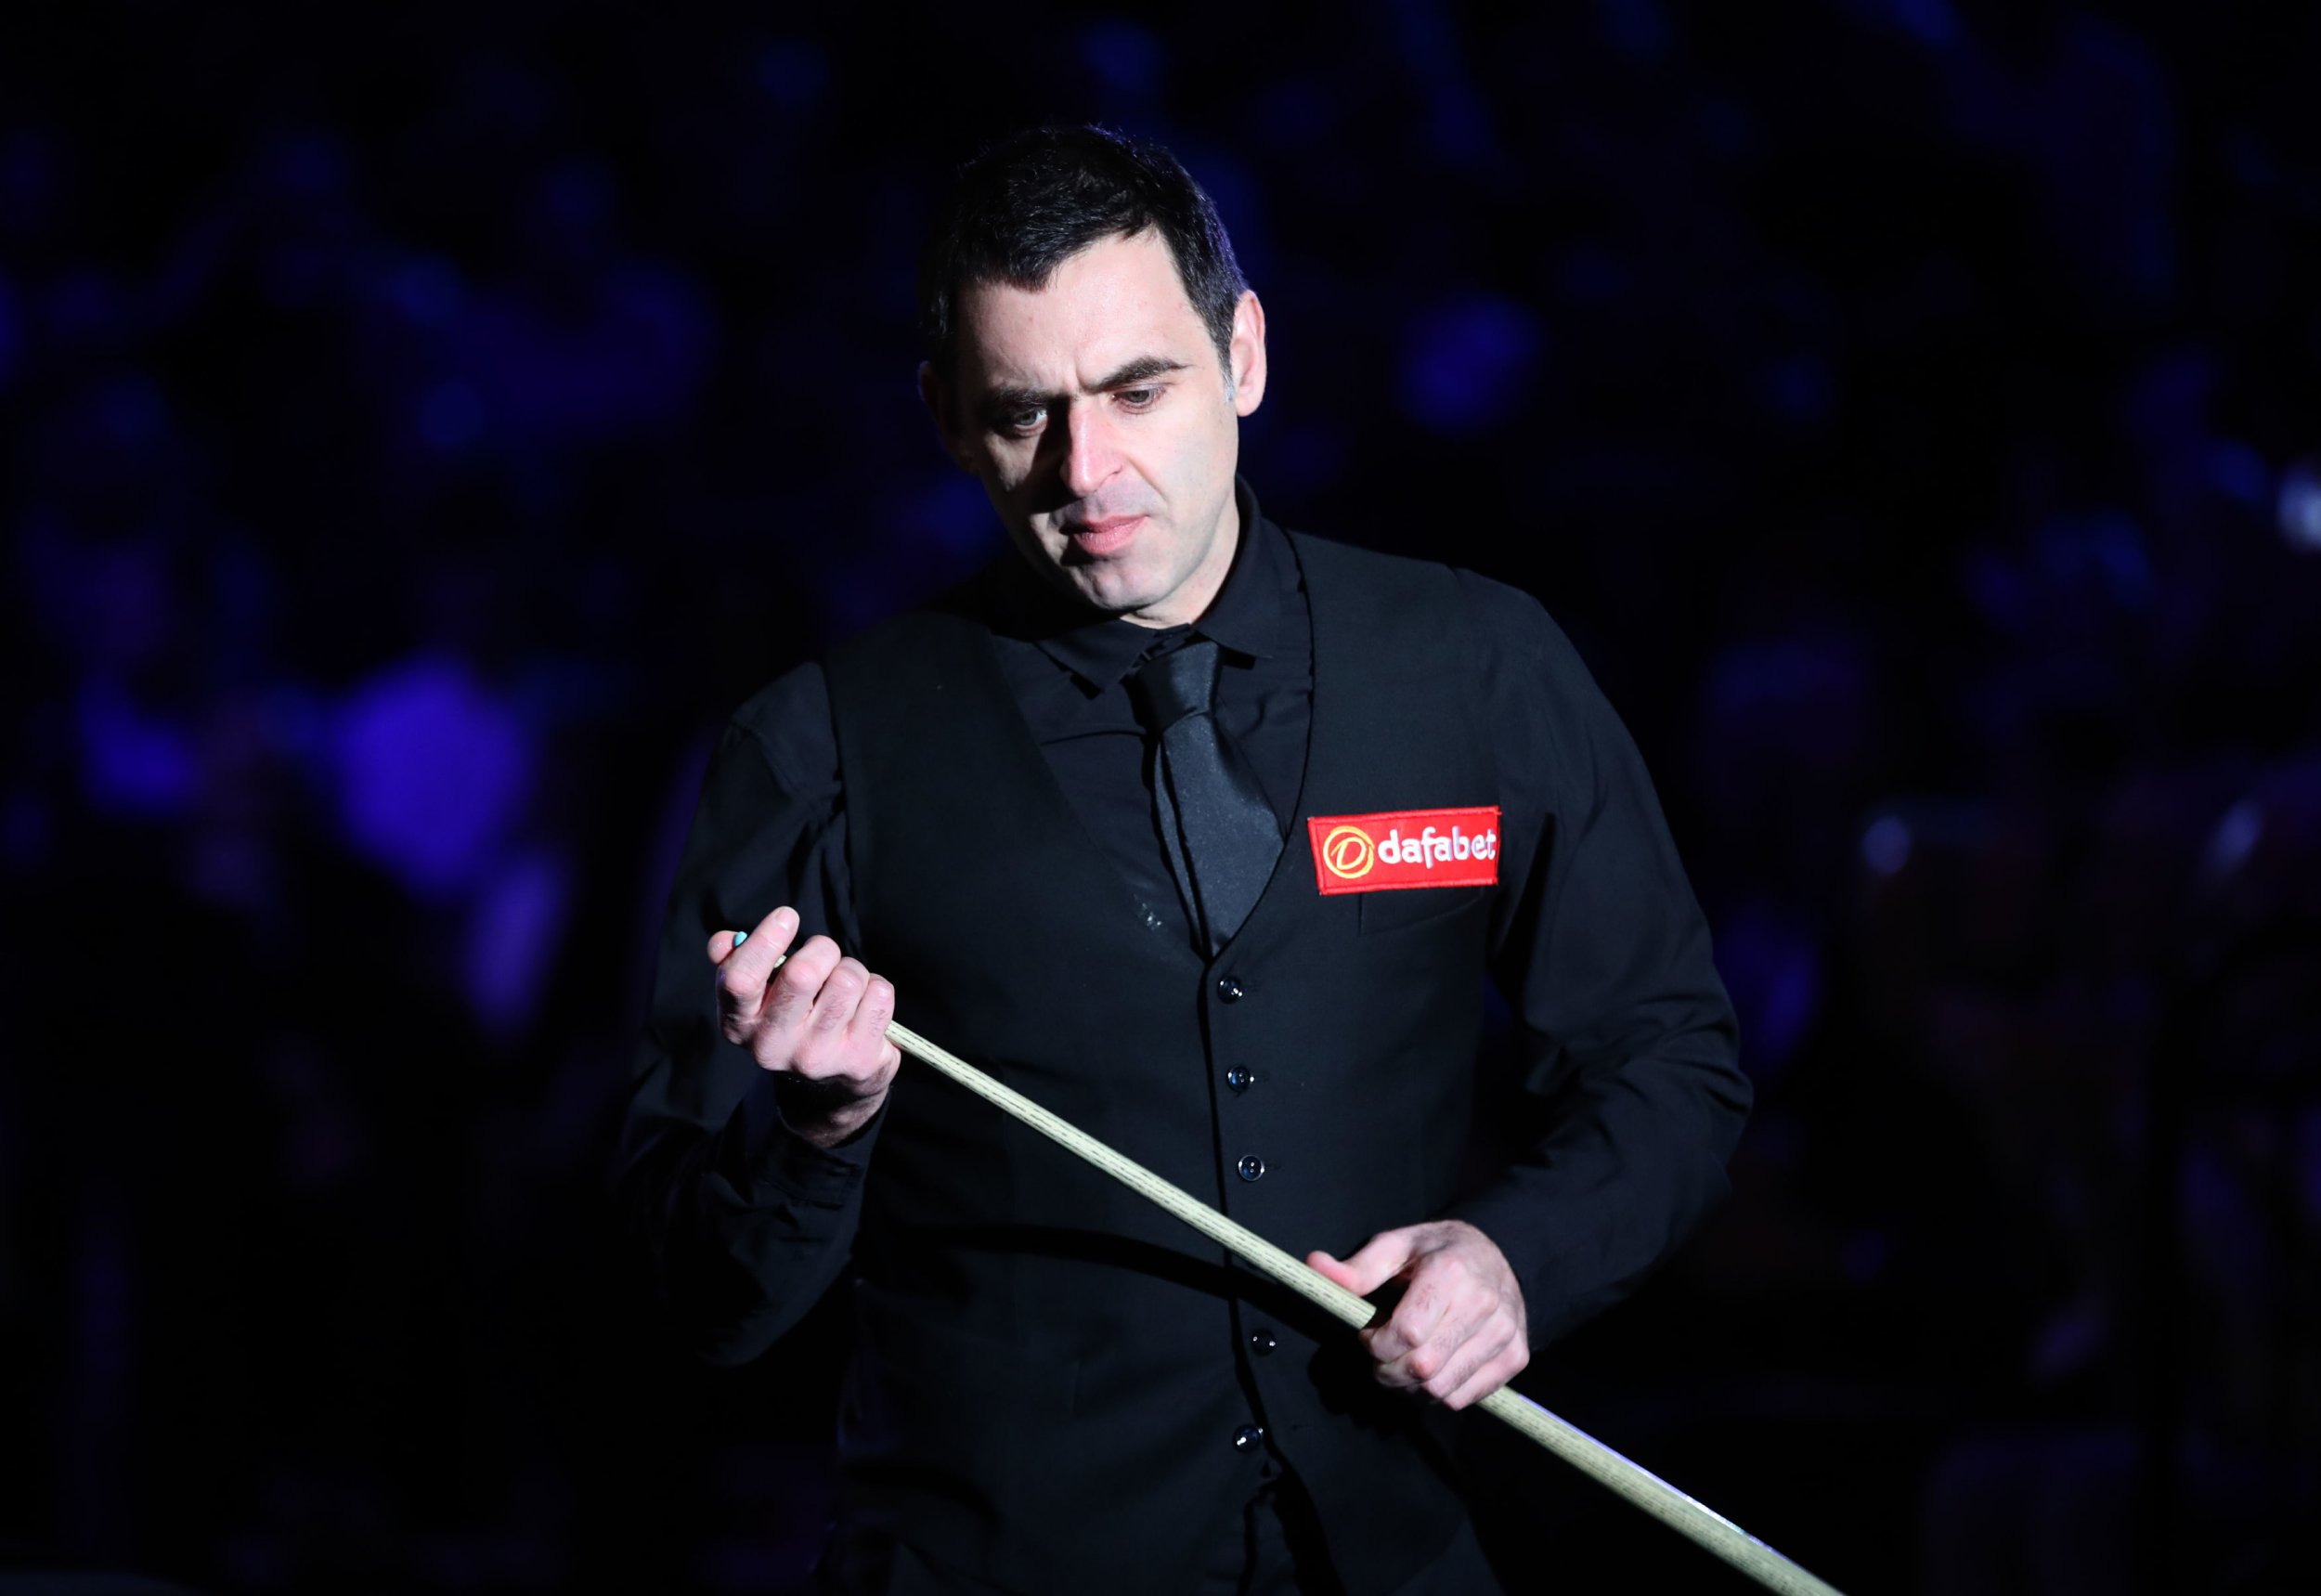 Ronnie O'Sullivan says he 'doesn't enjoy big events' ahead of Masters semi-final with Ding Junhui